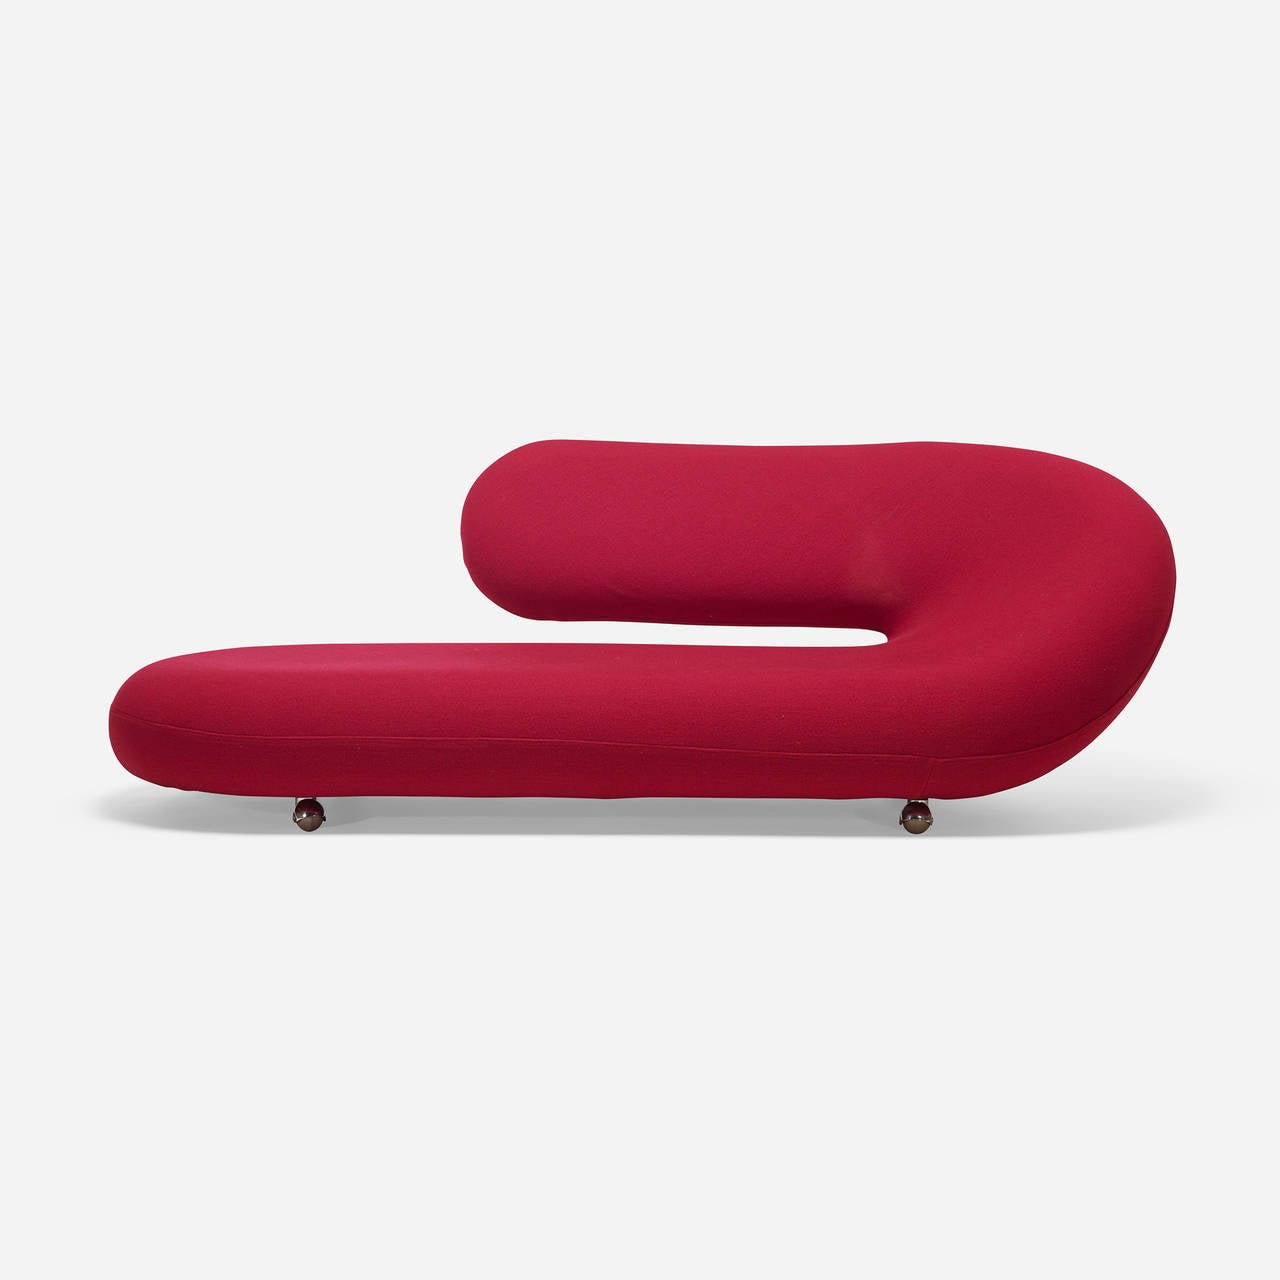 Cleopatra chaise lounge by geoffrey harcourt for artifort for Artifort chaise lounge